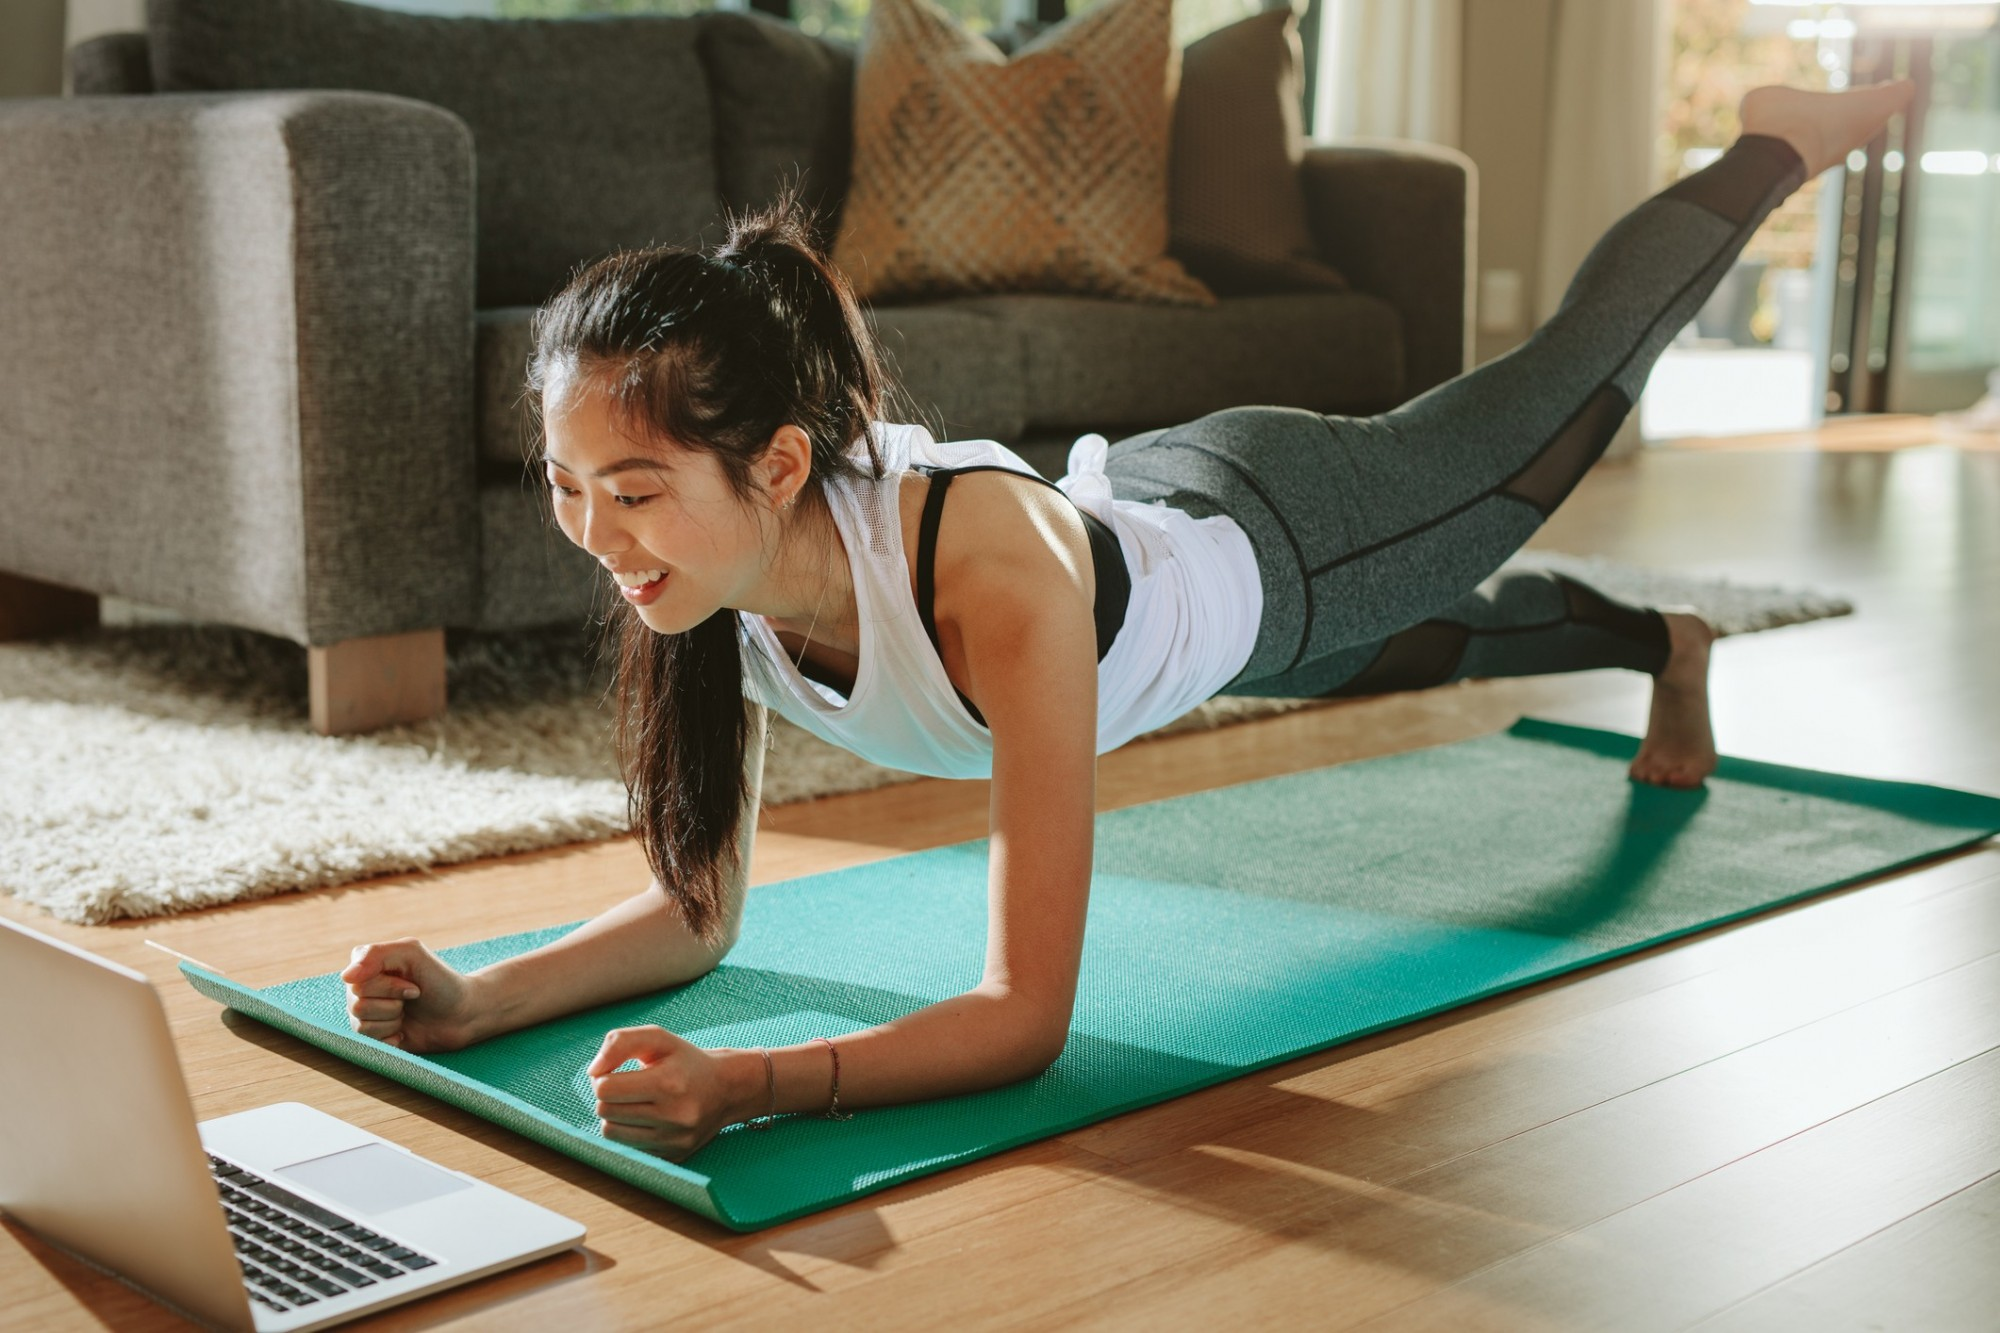 Woman doing a plank on a yoga mat, keeping fit at home